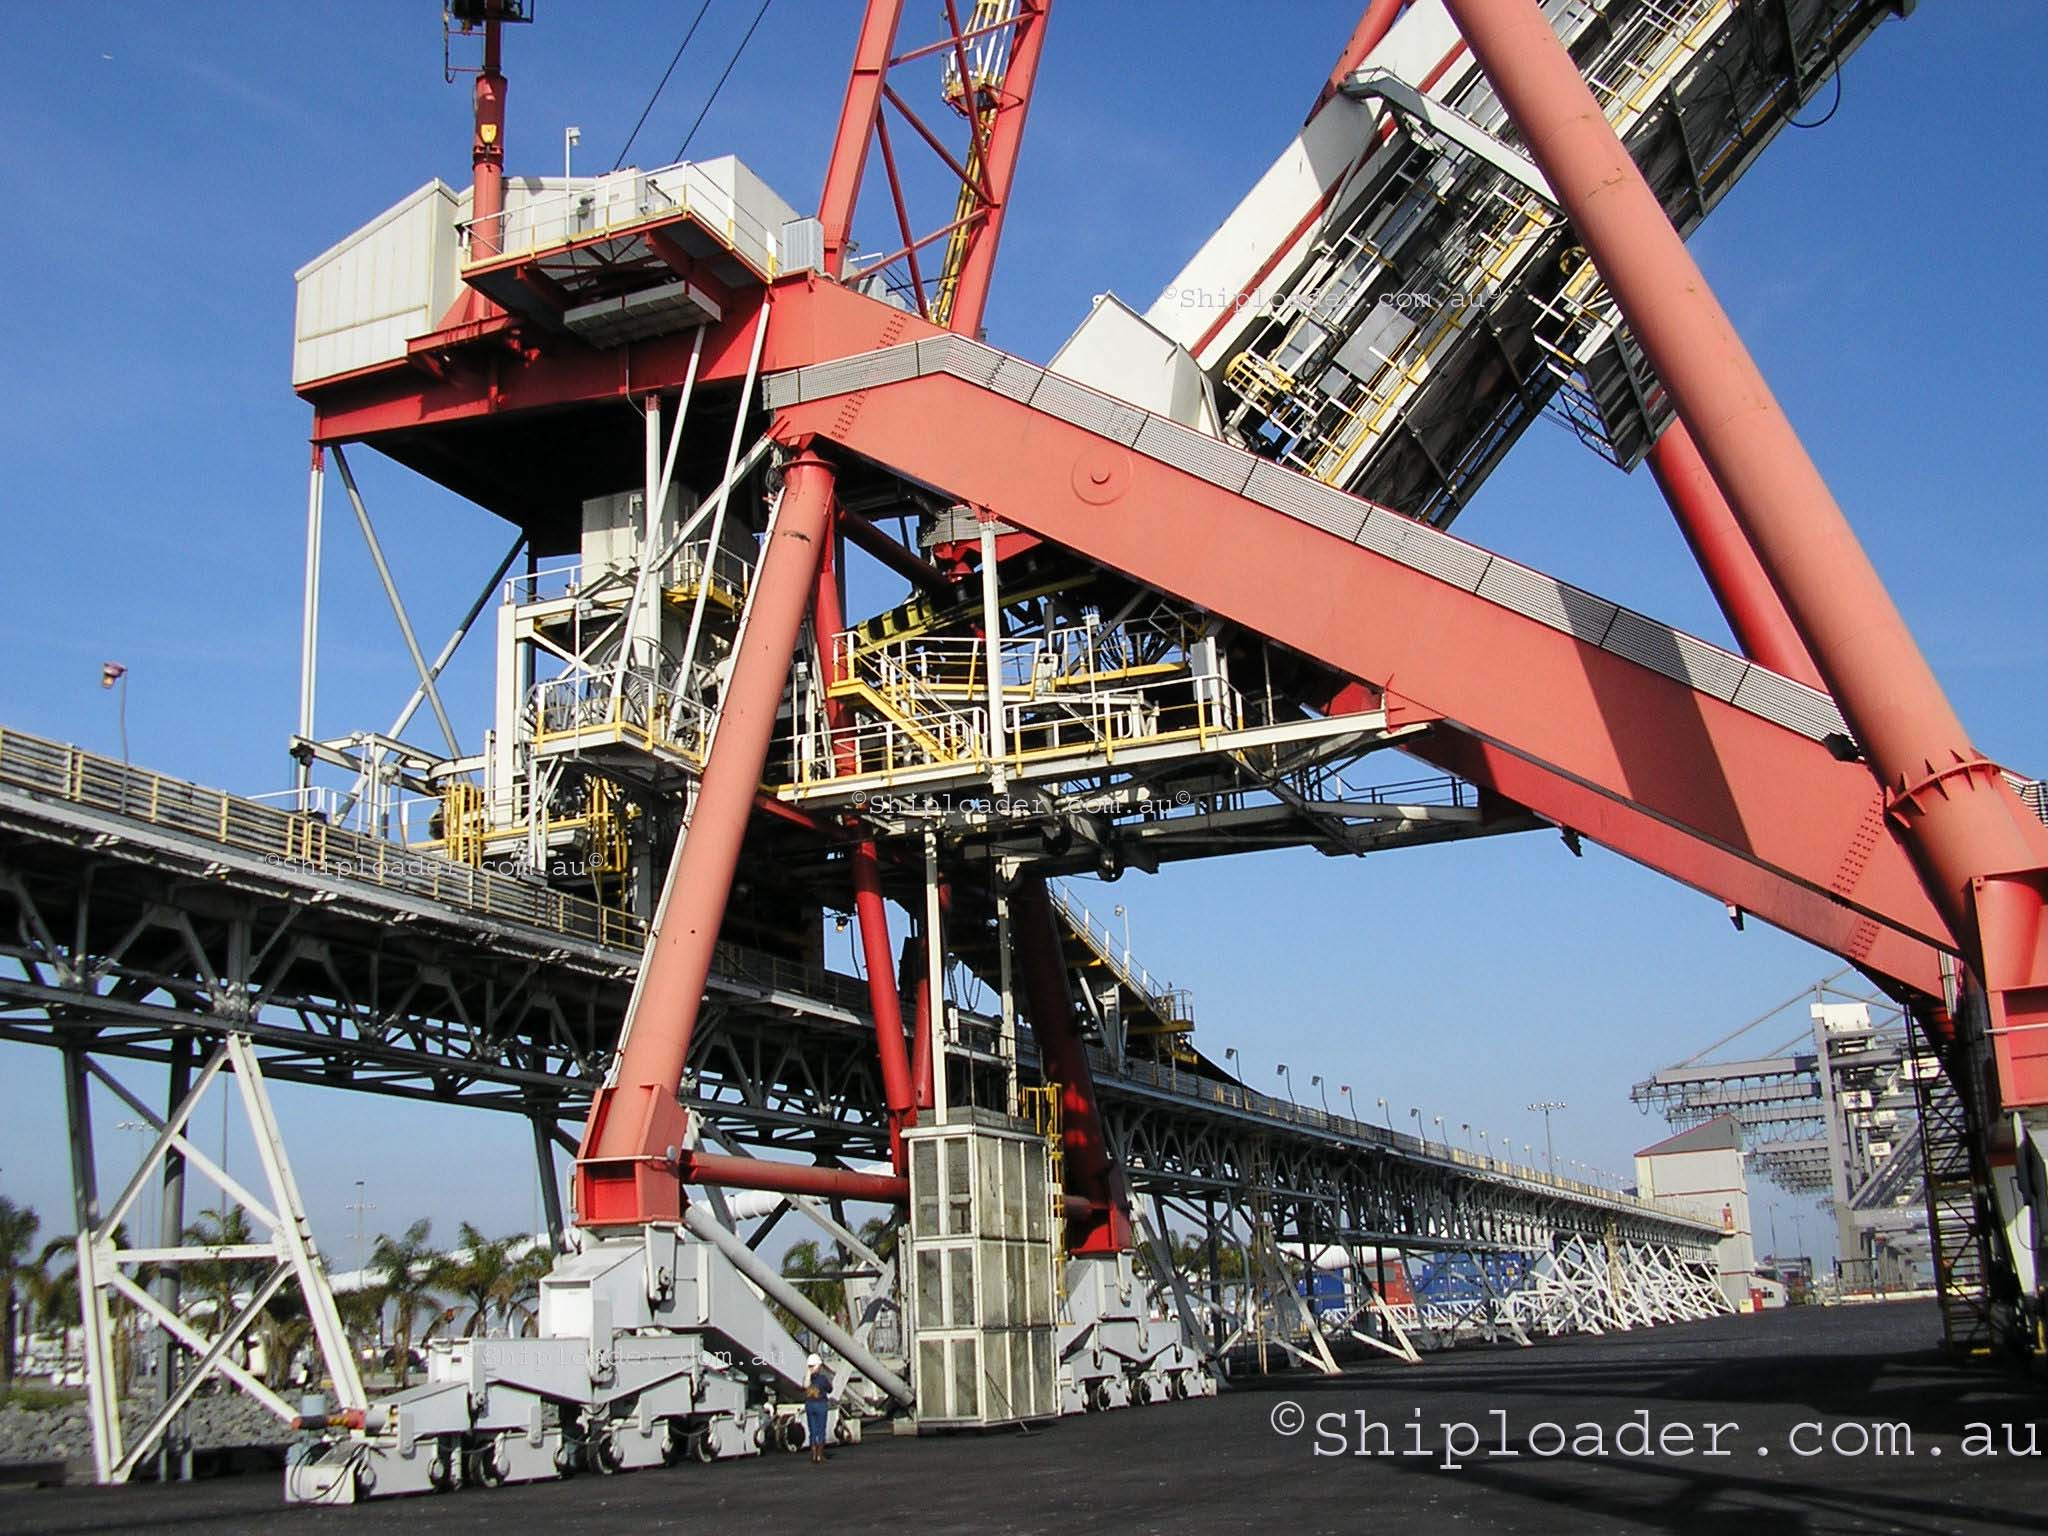 Shiploader main structure showing person for a size comparison